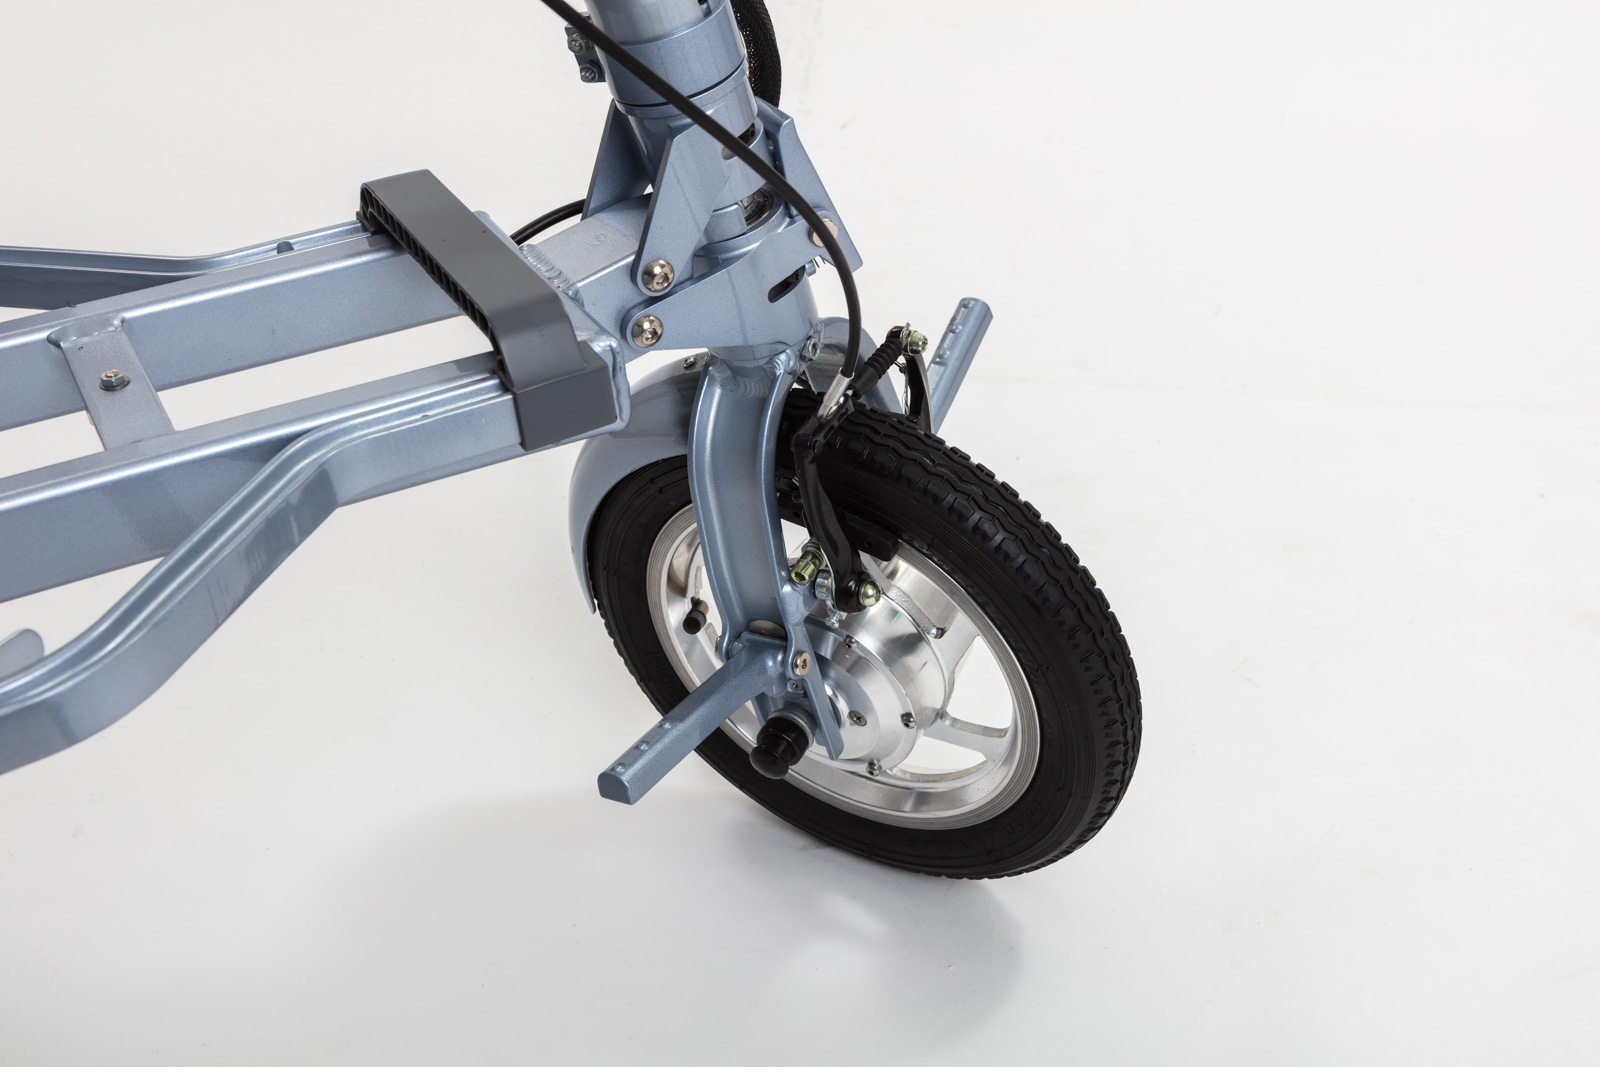 Scooter Ramps For Cars >> eFOLDi Lightweight Scooter HD - Mobility Scooters Ireland